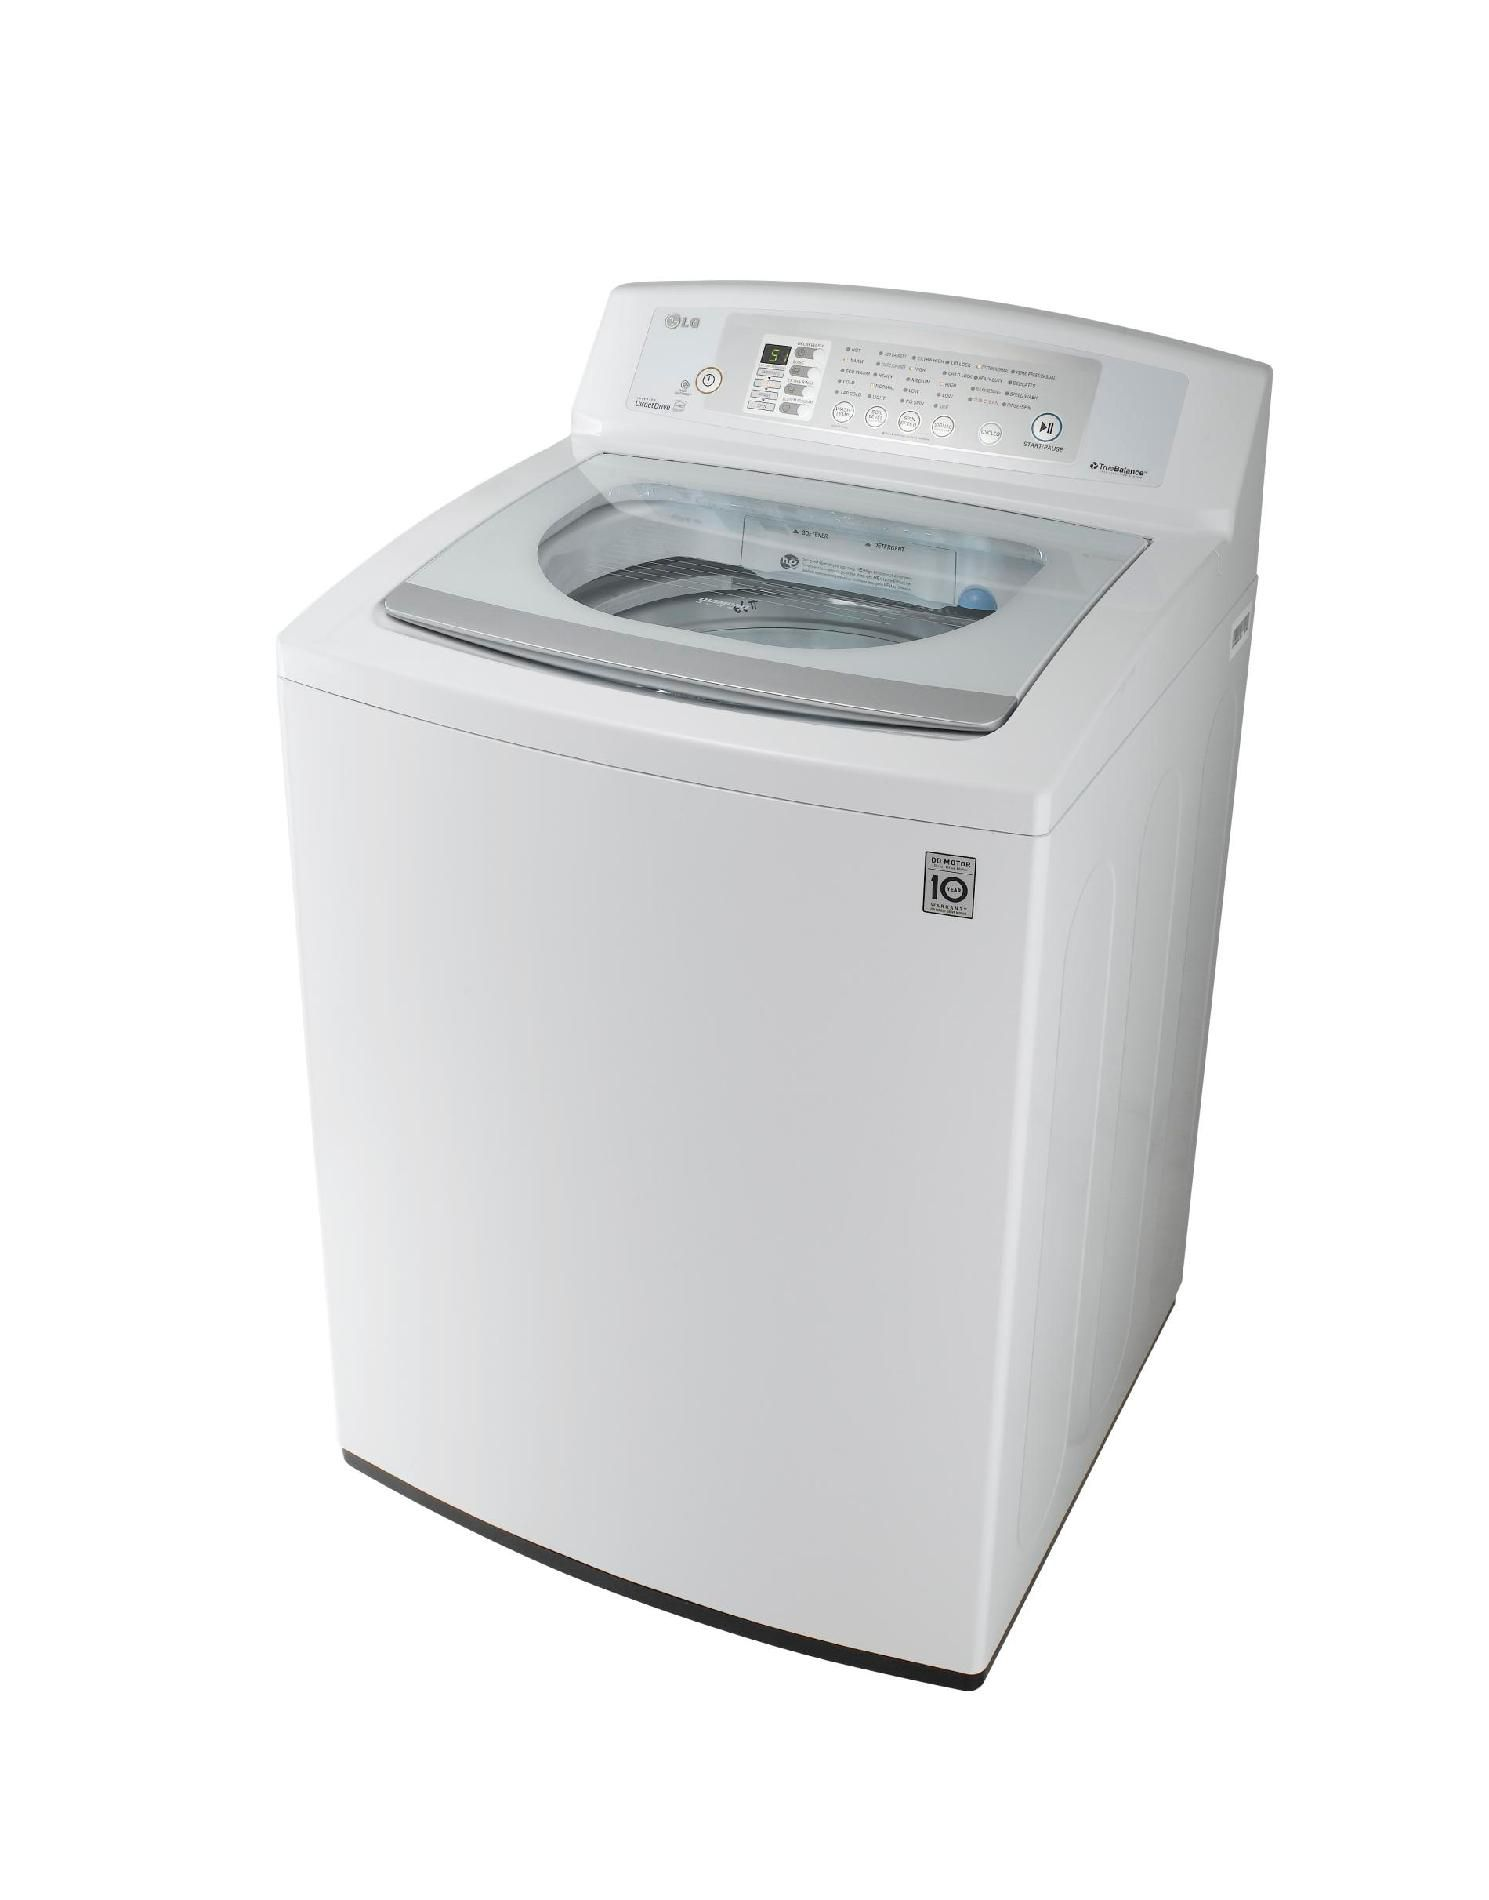 LG 3.7 cu. ft. High-Efficiency Top-Load  Washer - White